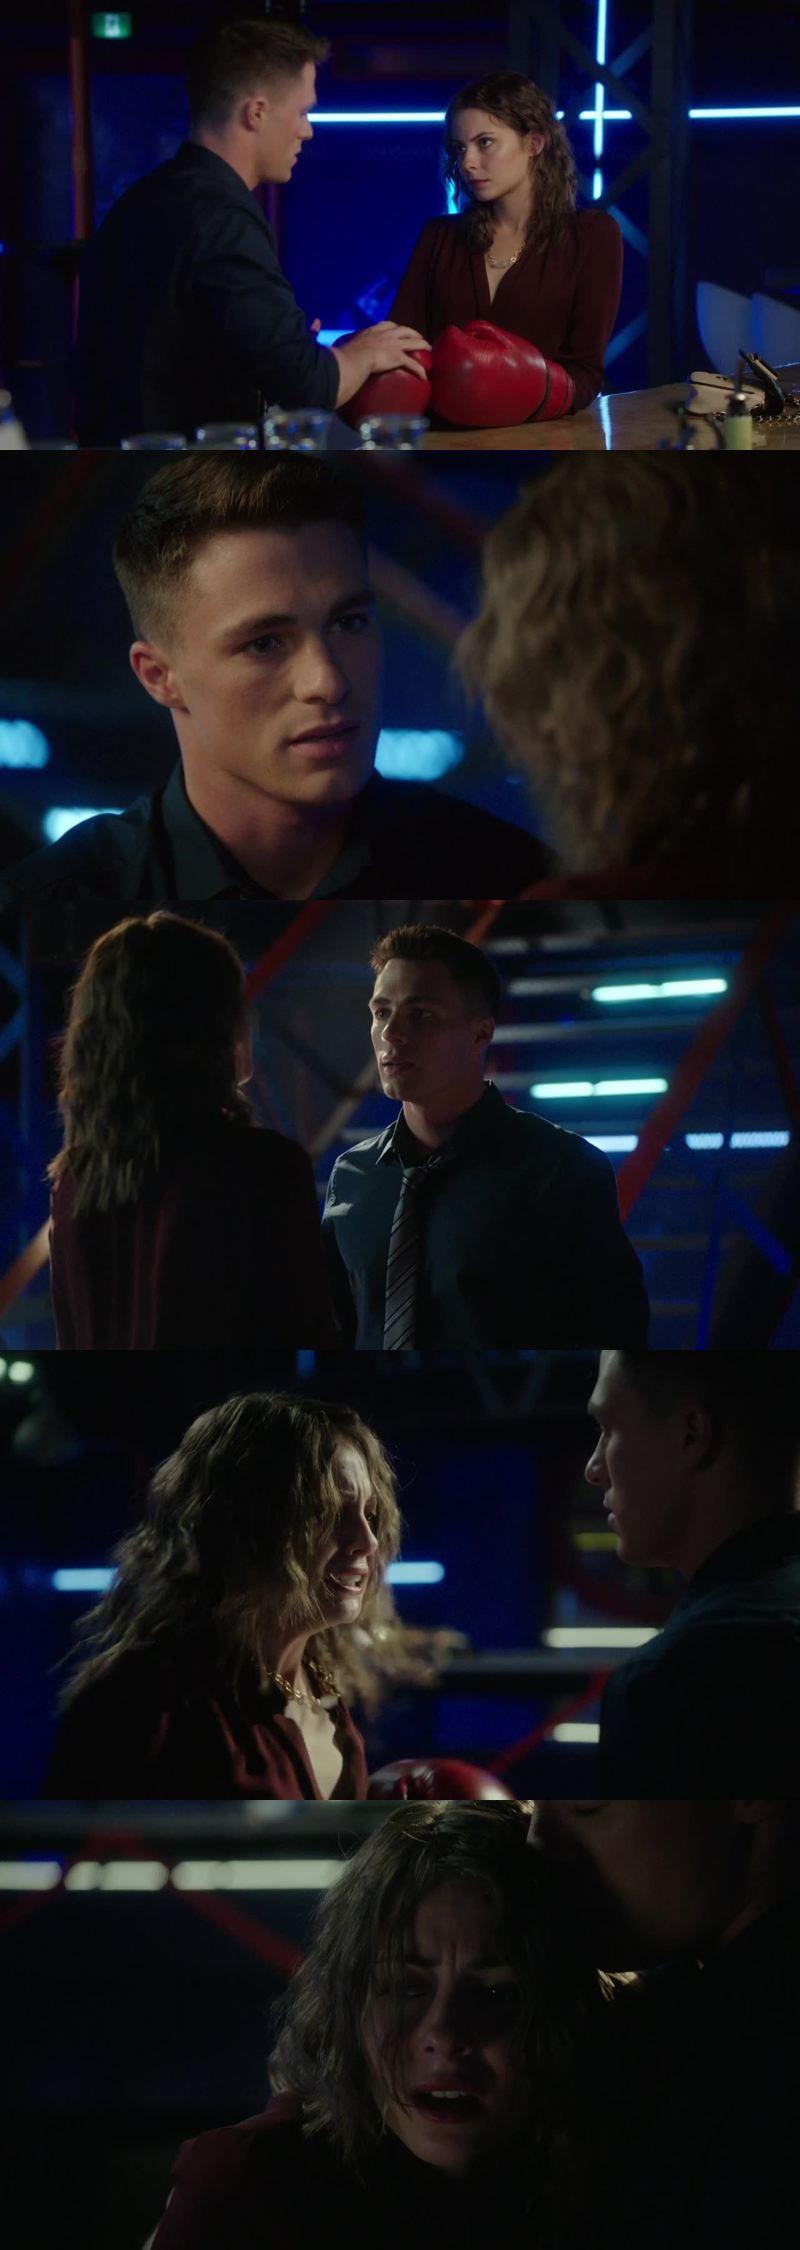 Let's focus on how much Roy loves Thea